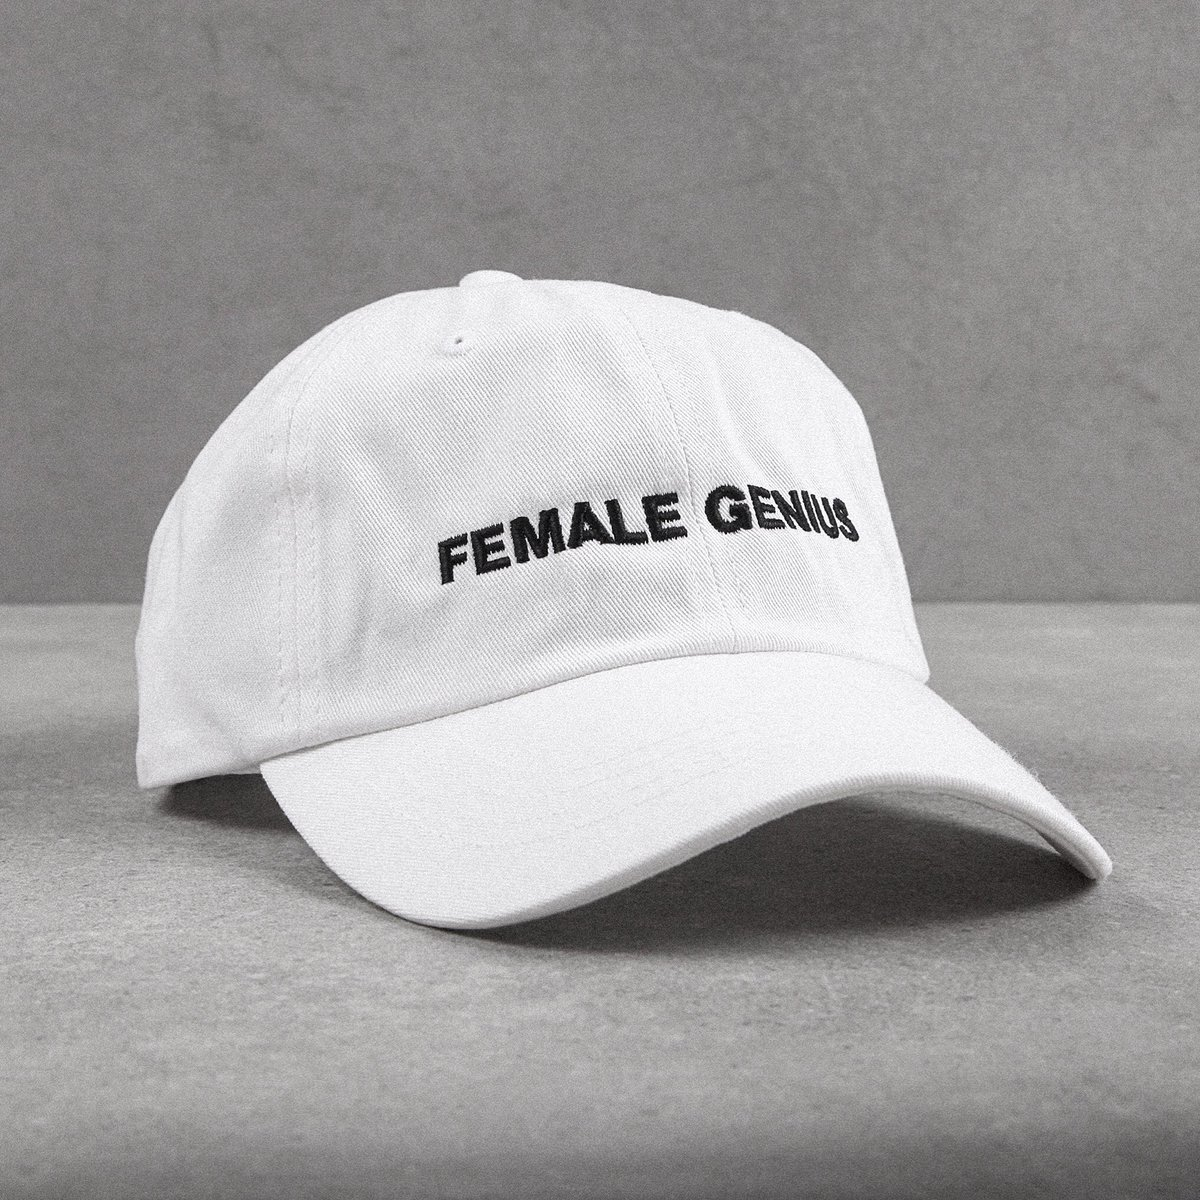 FEMALE GENIUS Cap available exclusively online at http://www.44LDN.com   • • • • • • • • • • #outfitfromabove #ootd #hypebeast #outfitsociety #bestofstreetwear #dadhats #streetstyle #femalegenius #offwhite #simplefits #itsaboutdetail #caps #hypecaps #snapbacks #44LDN